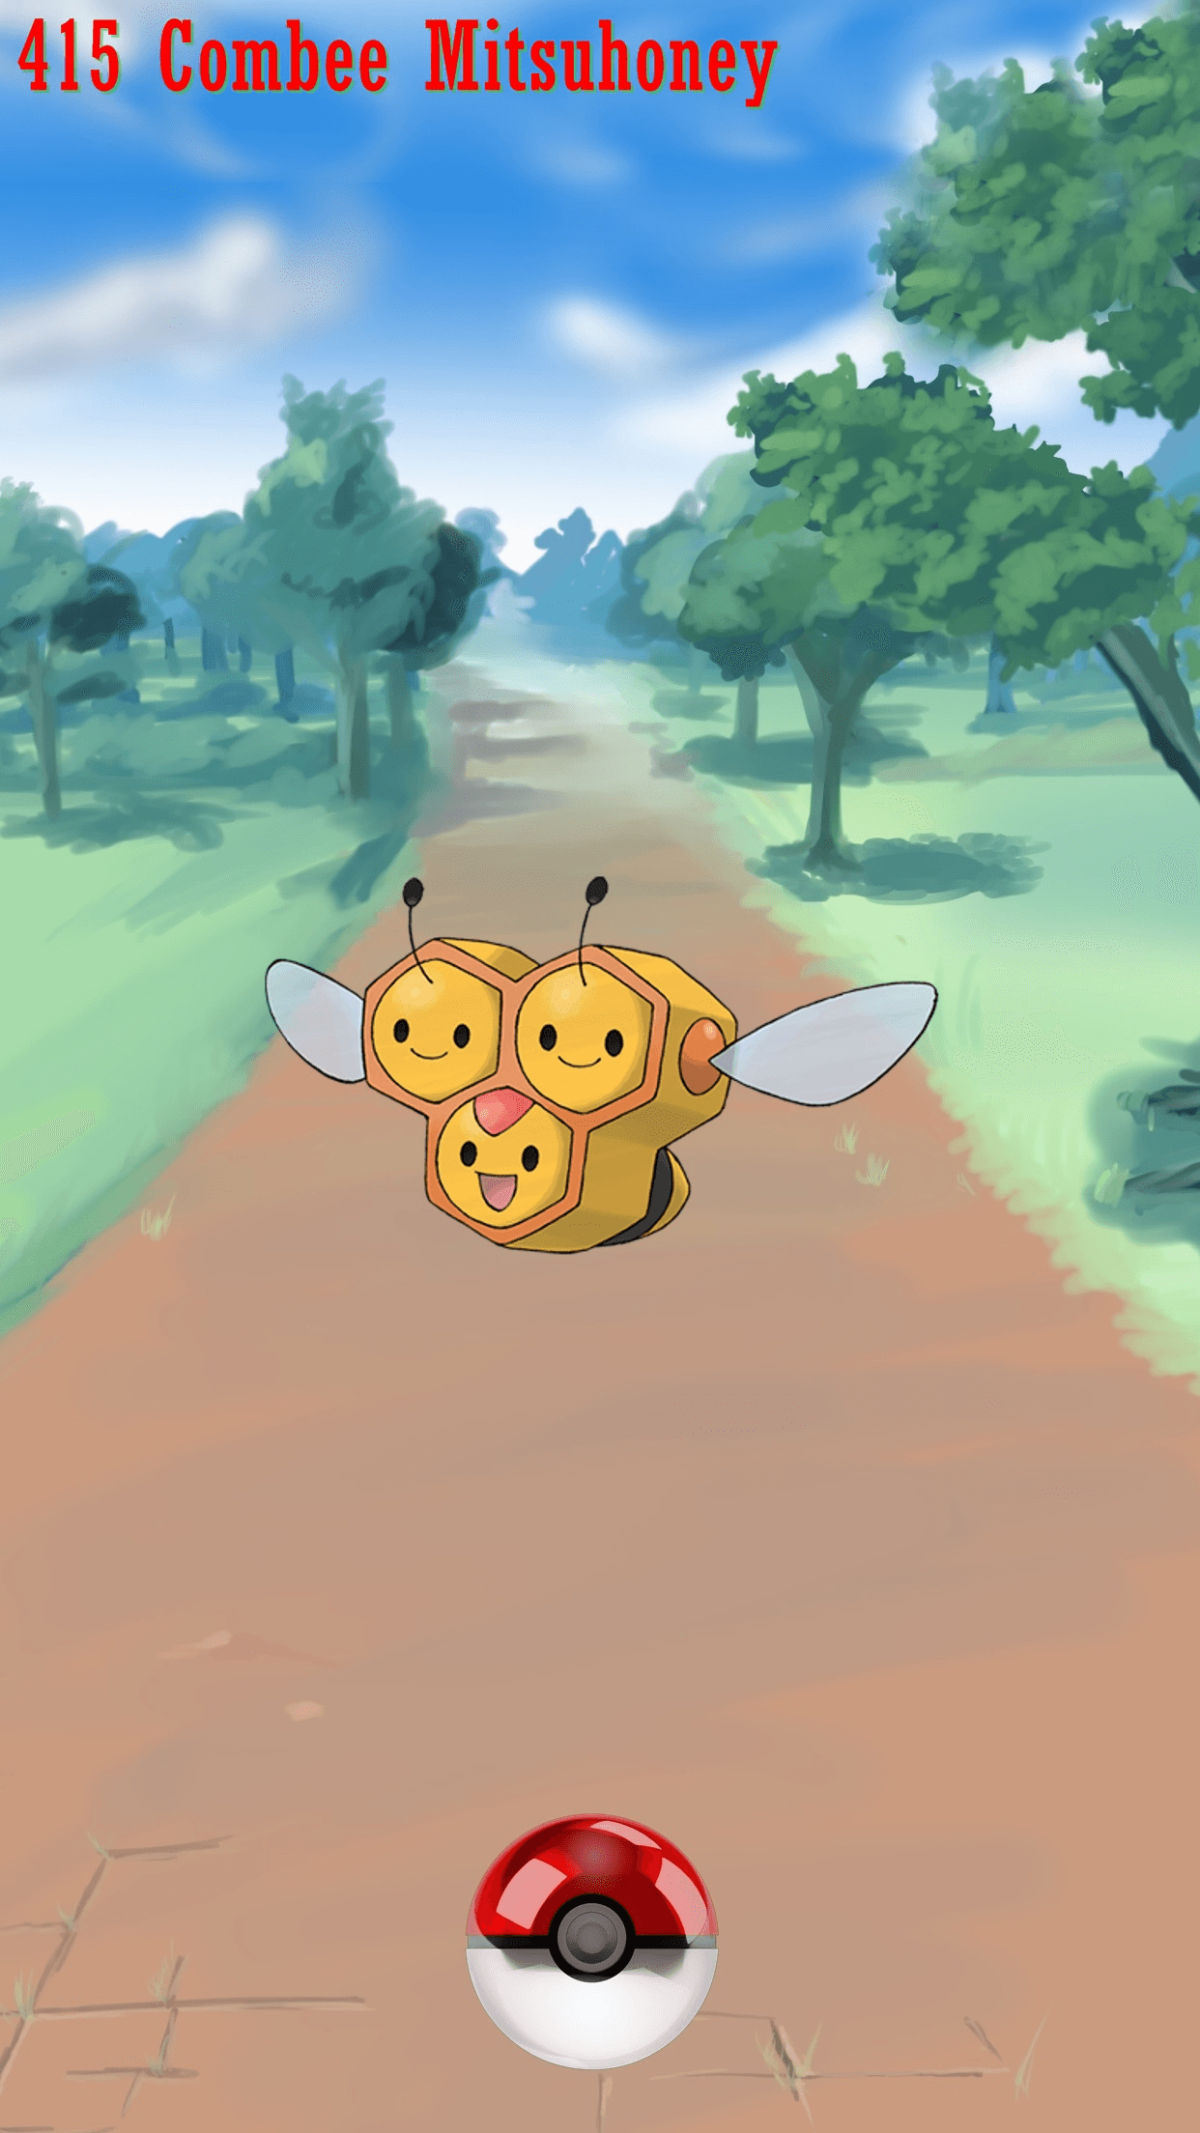 415 Street Pokeball Combee Mitsuhoney | Wallpaper